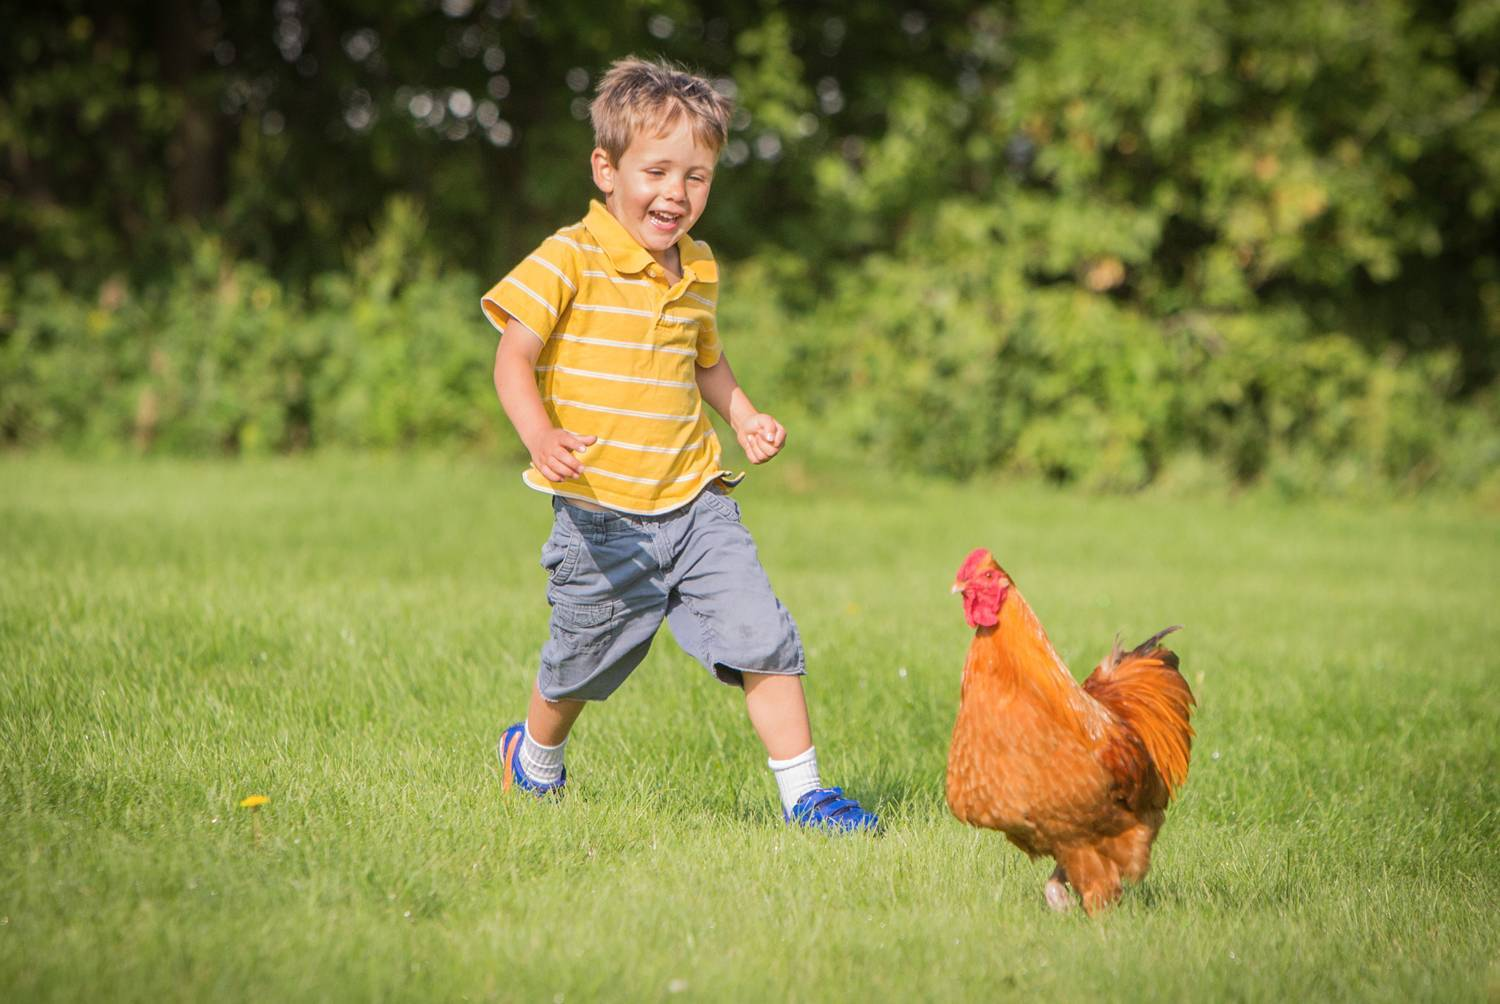 Simon Windgassen chases one of his family's chickens.